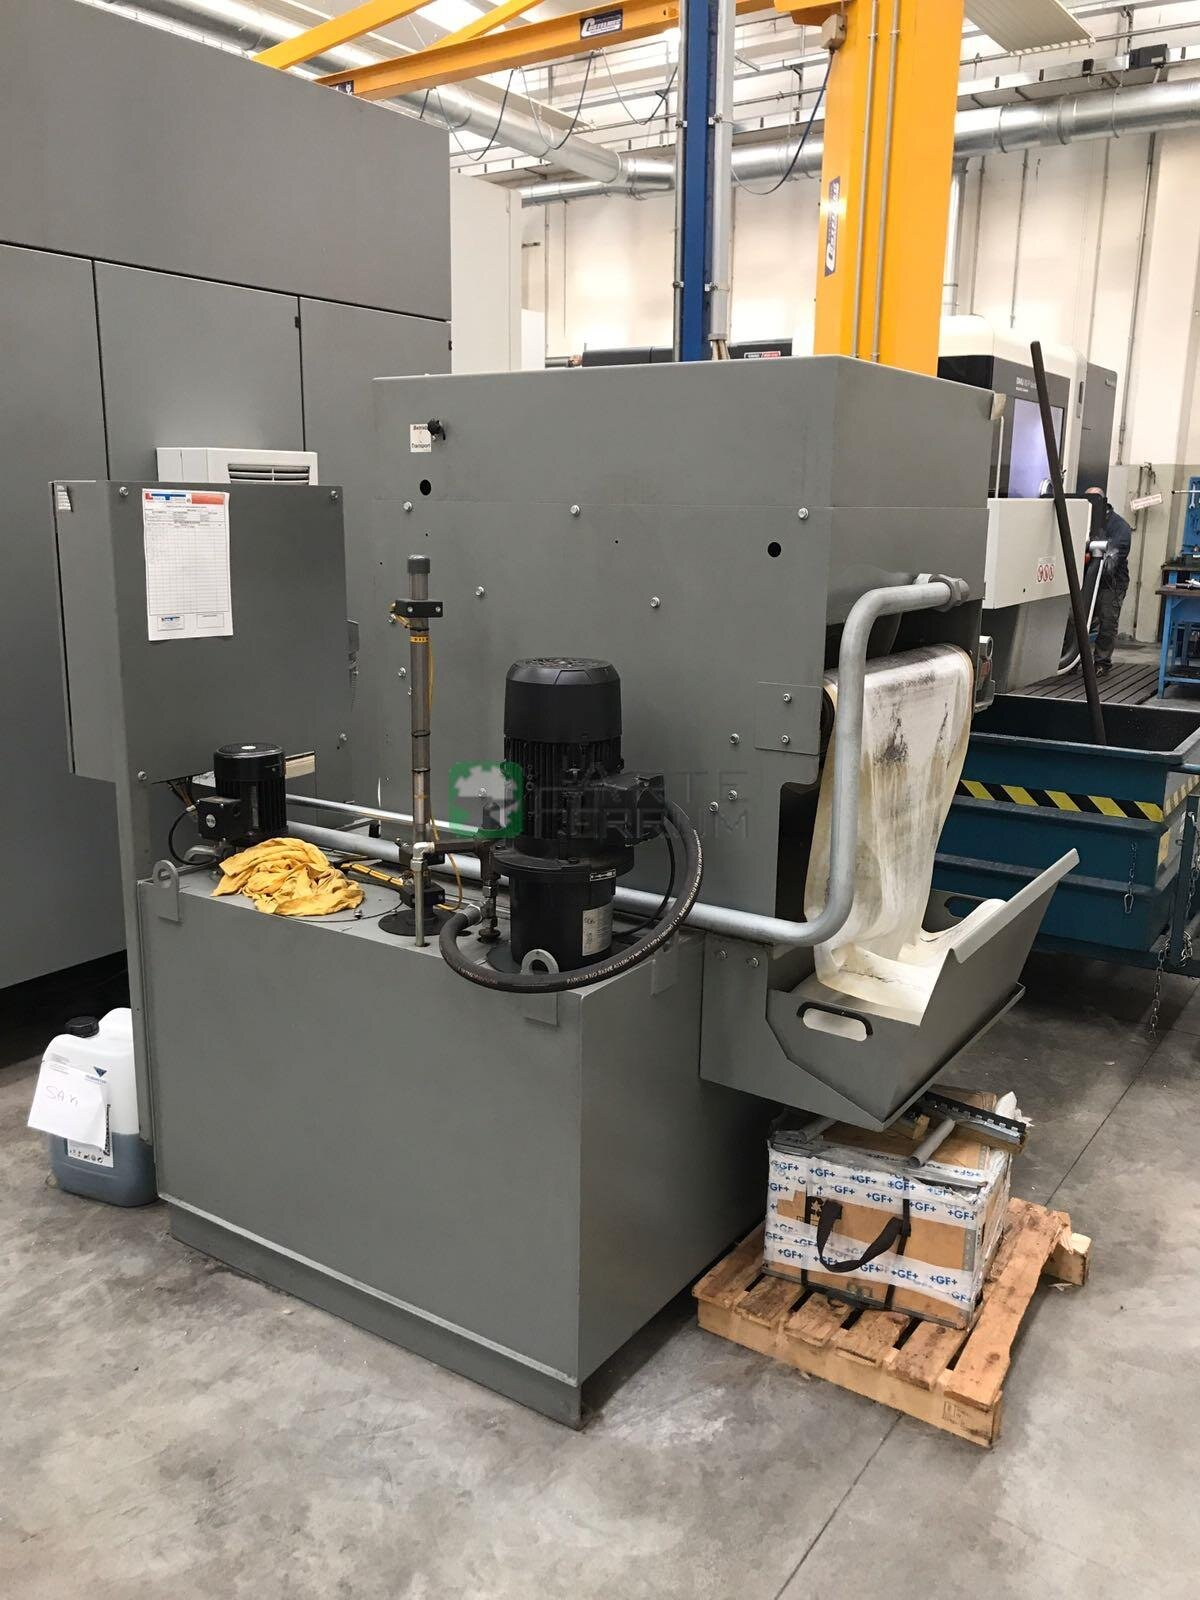 DMG DMF 250 LINEAR center (9)